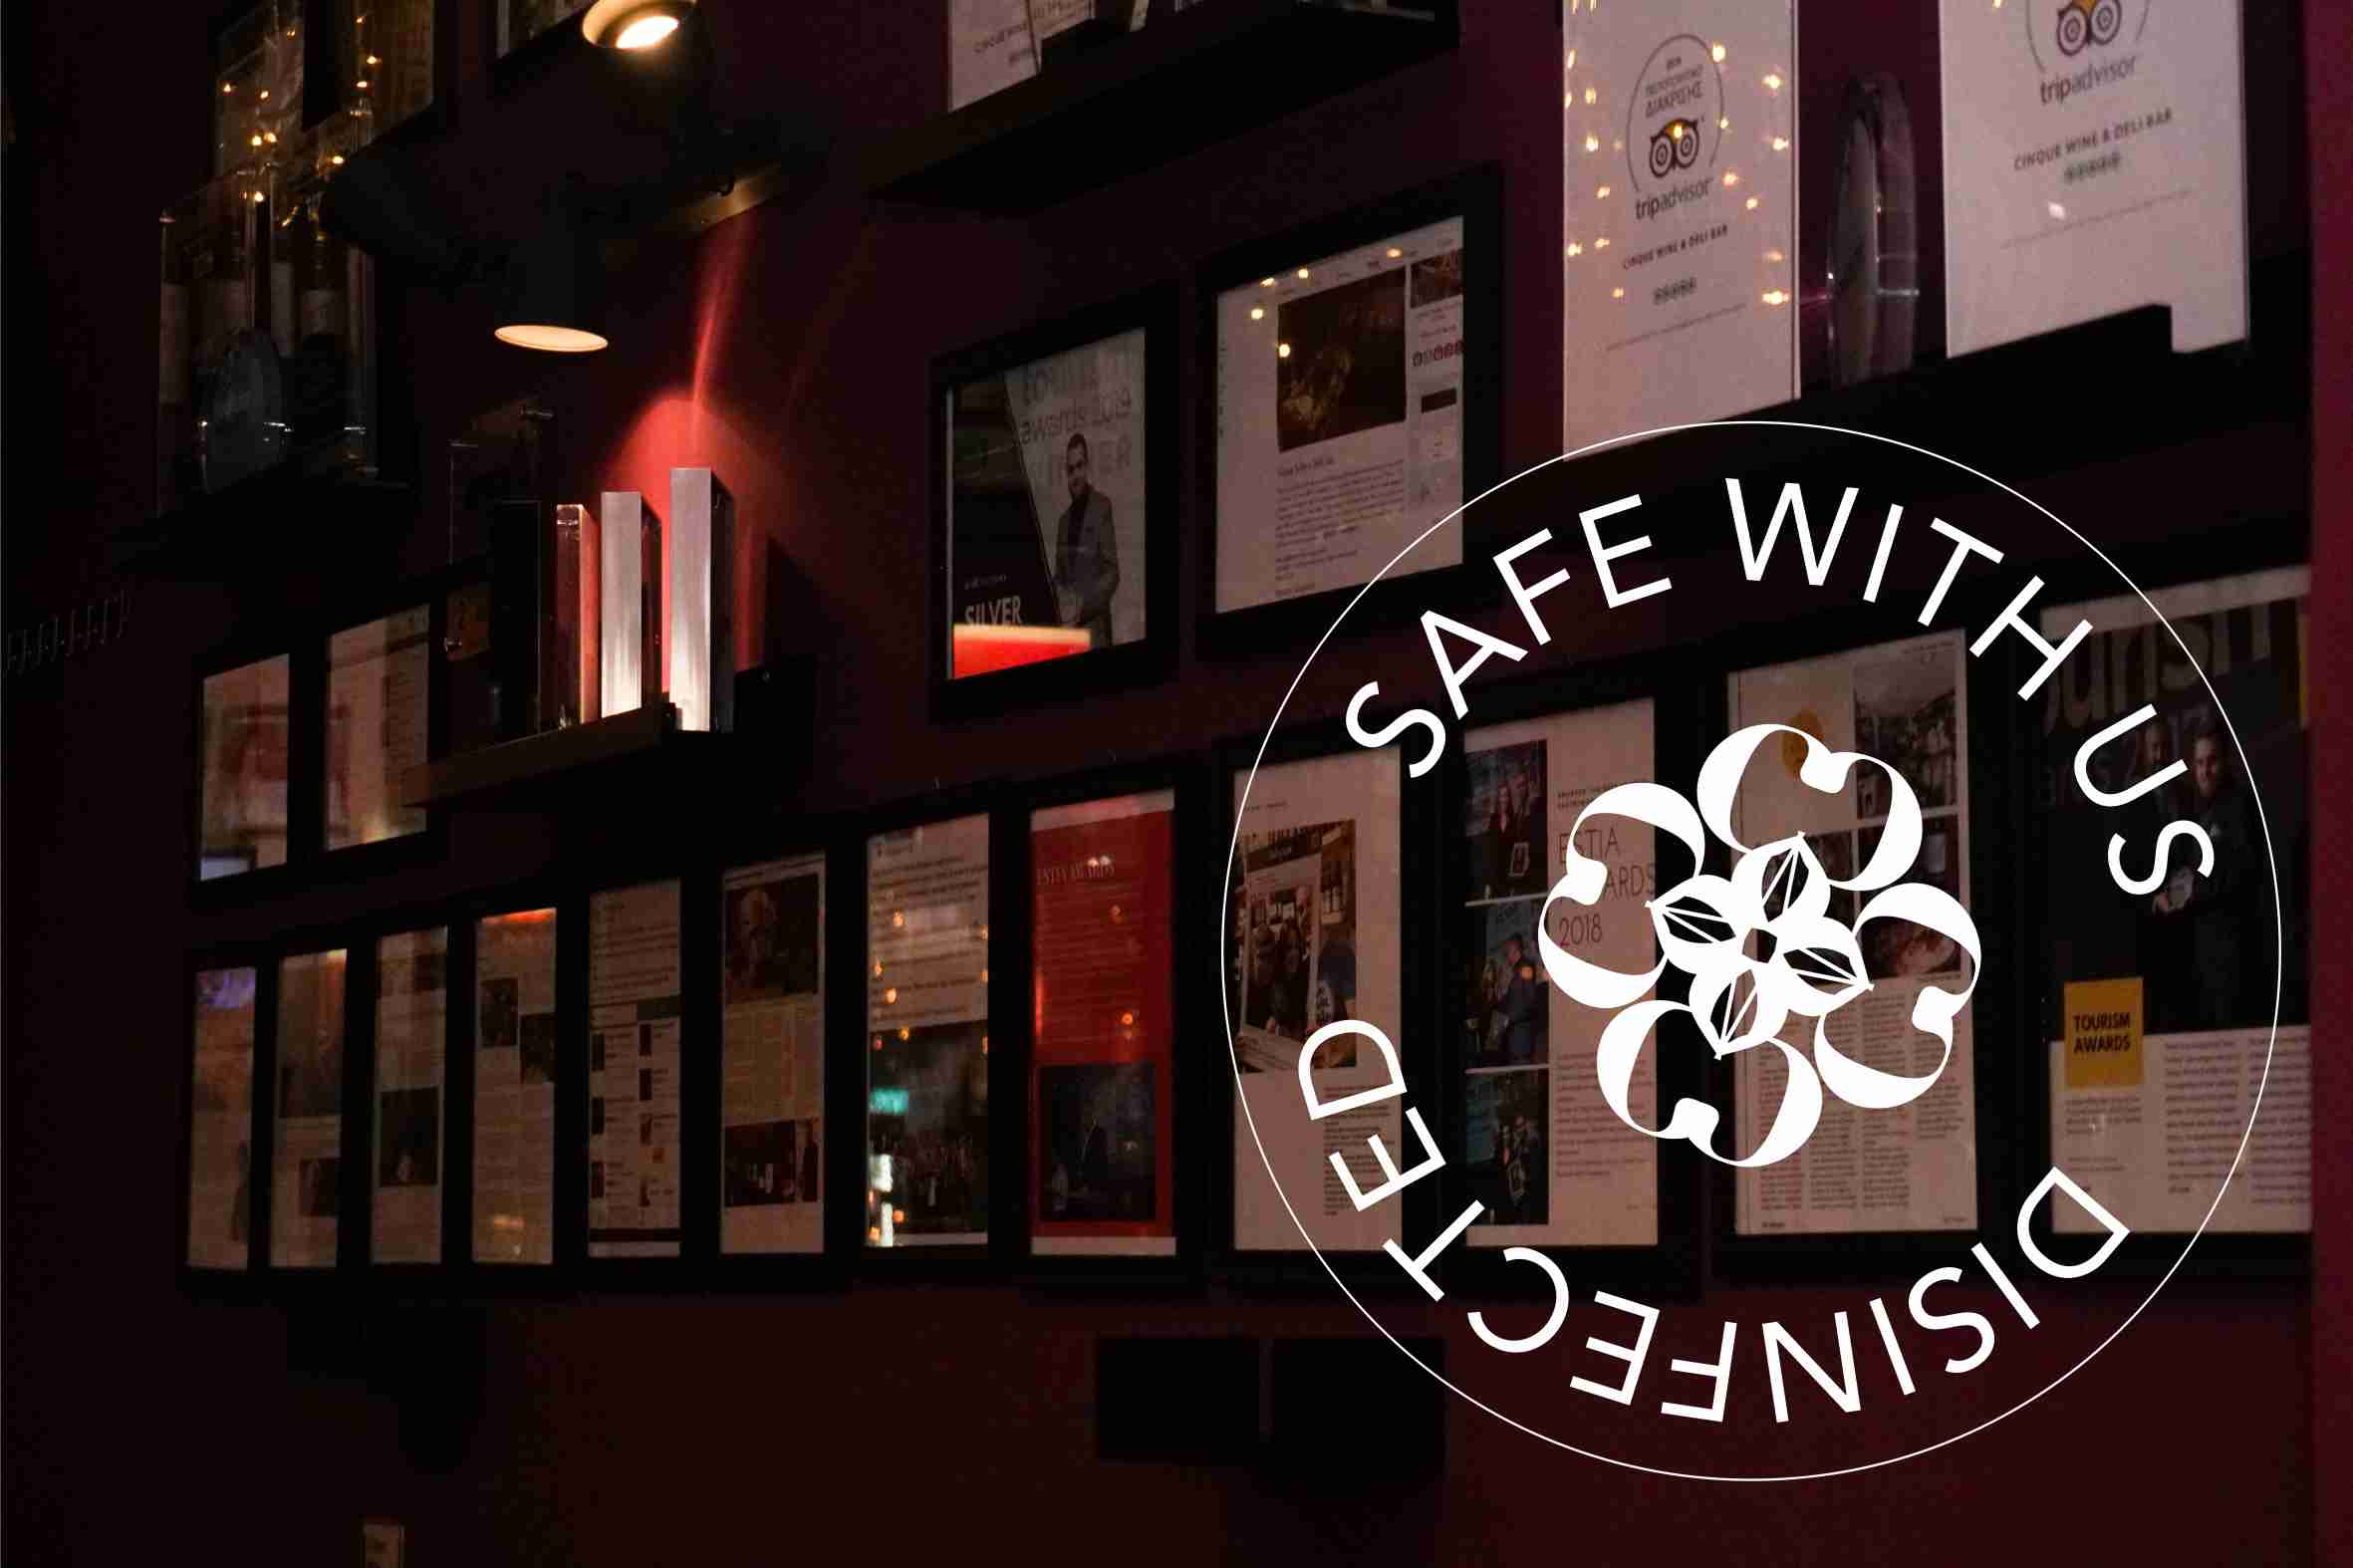 Safe with us - Cinque wine bar - safety - covid free